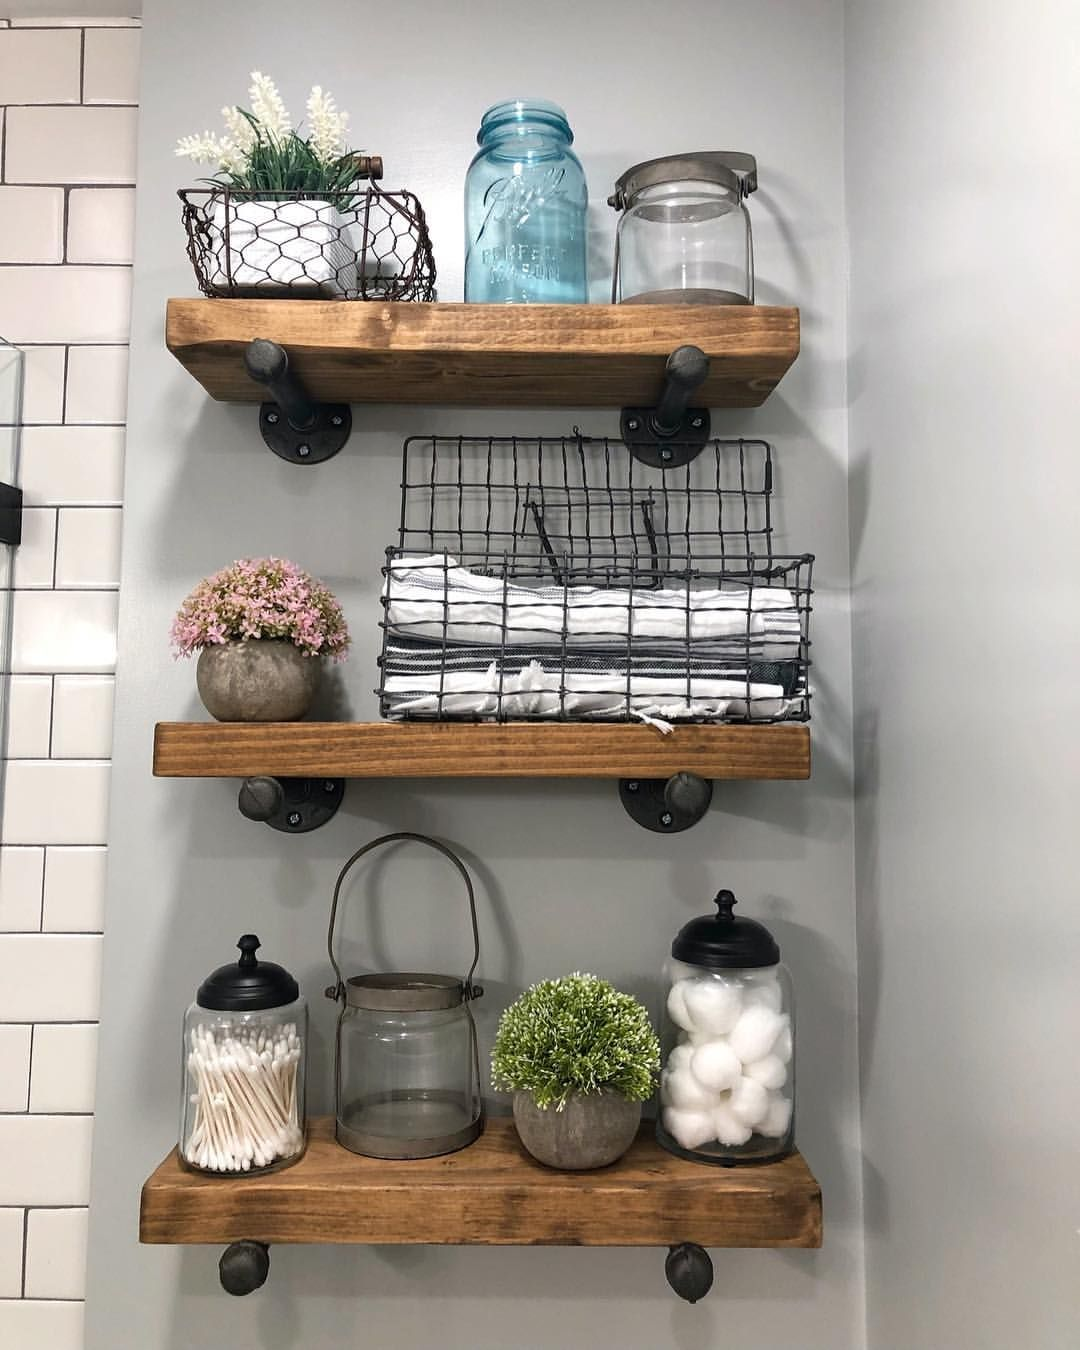 Decorative Rustic Storage Projects For Your Bathroom: Warming Up My Gray, Black And White Bathroom With These Great Rustic Wood Shelves, Some Vintage